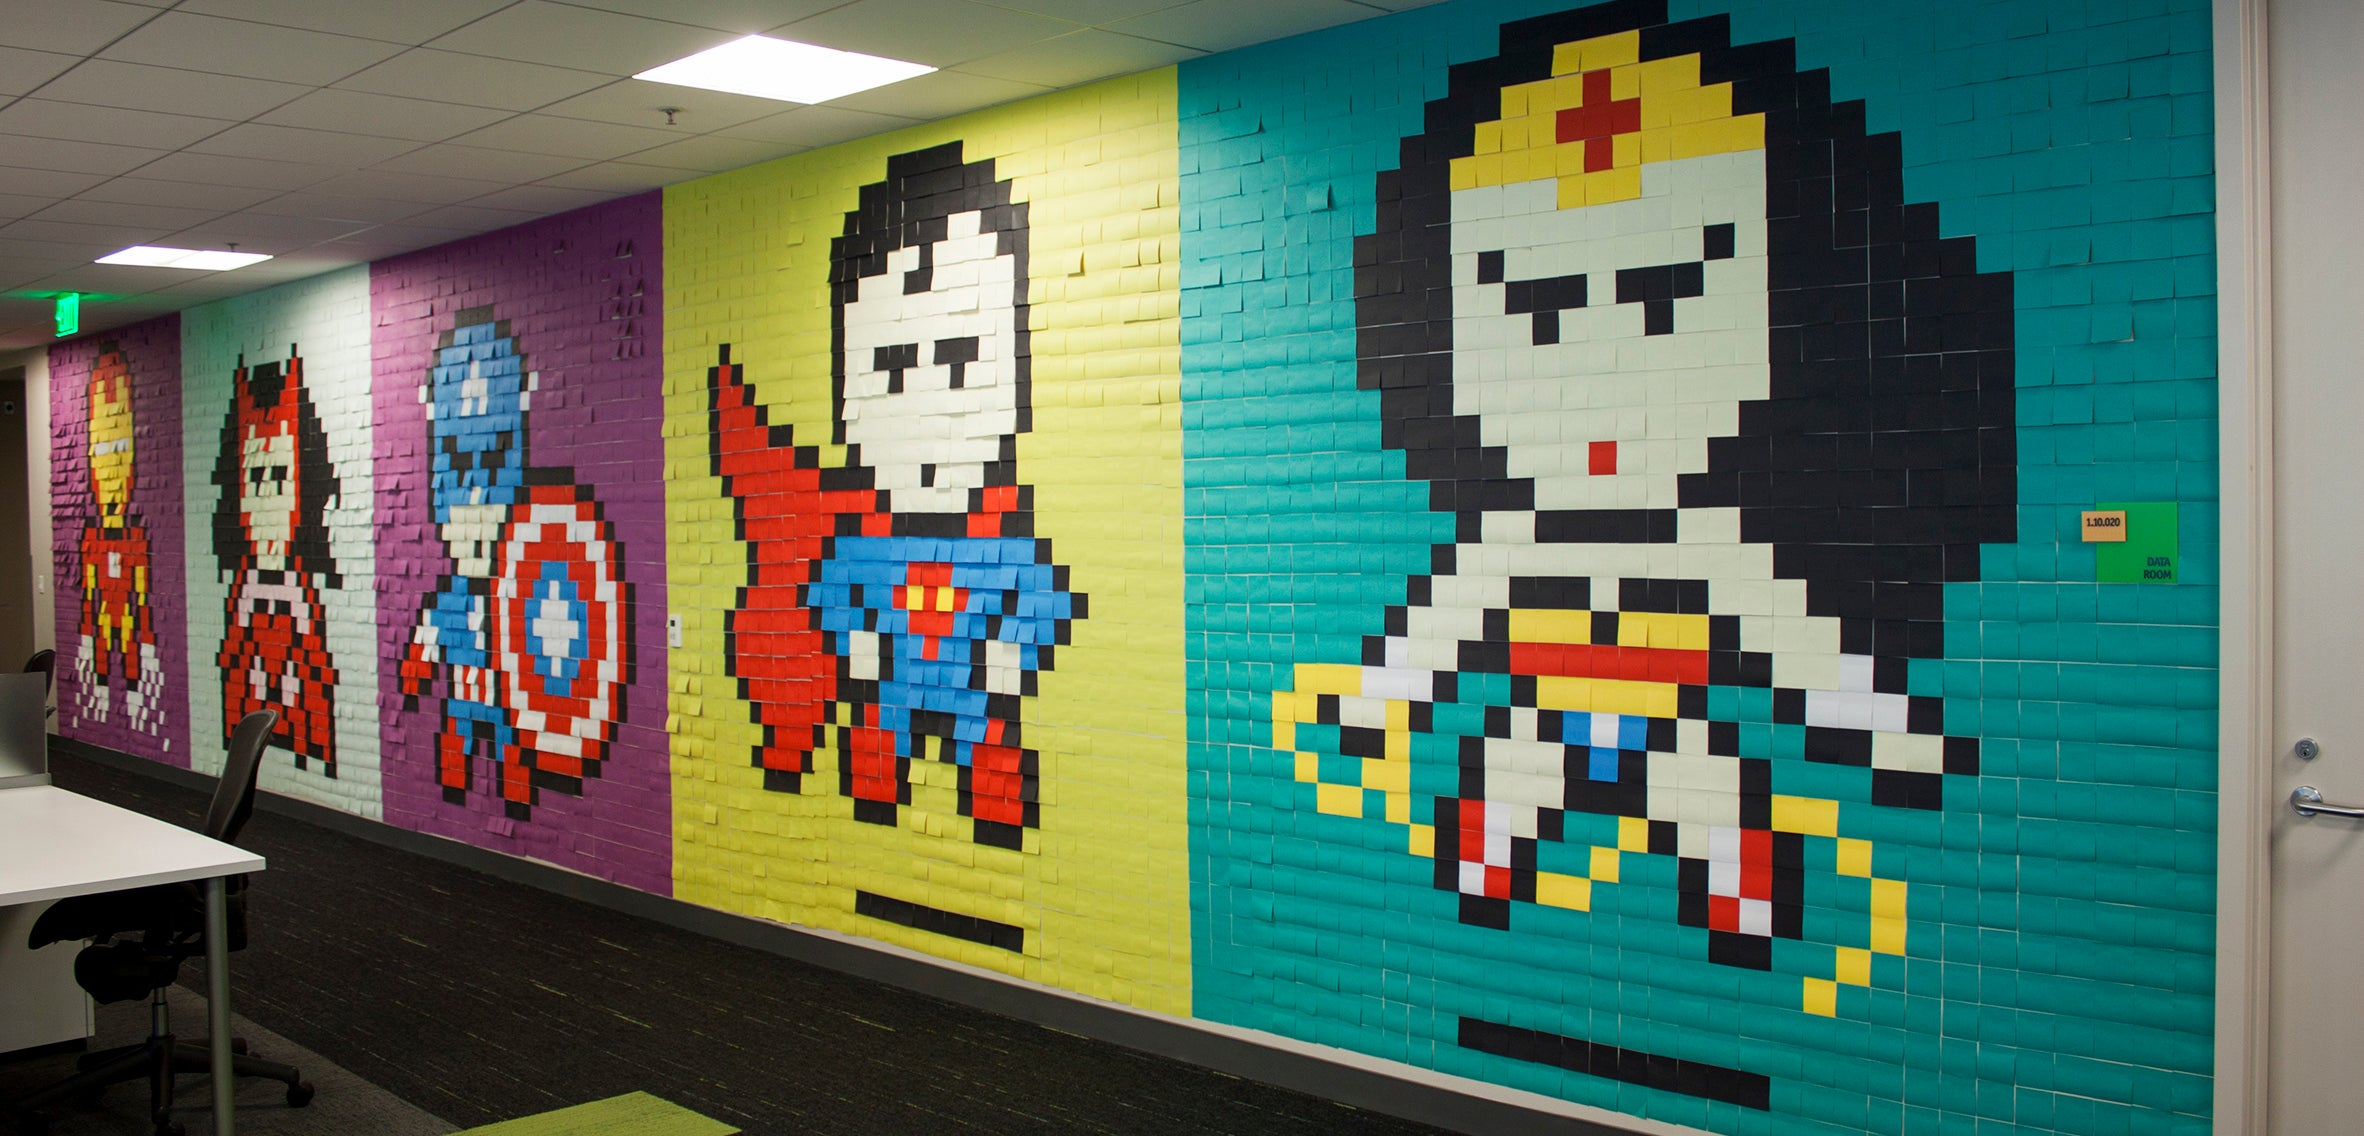 Exceptionnel Building Super Heroes Out Of Post-It Notes | Kotaku Australia QP19